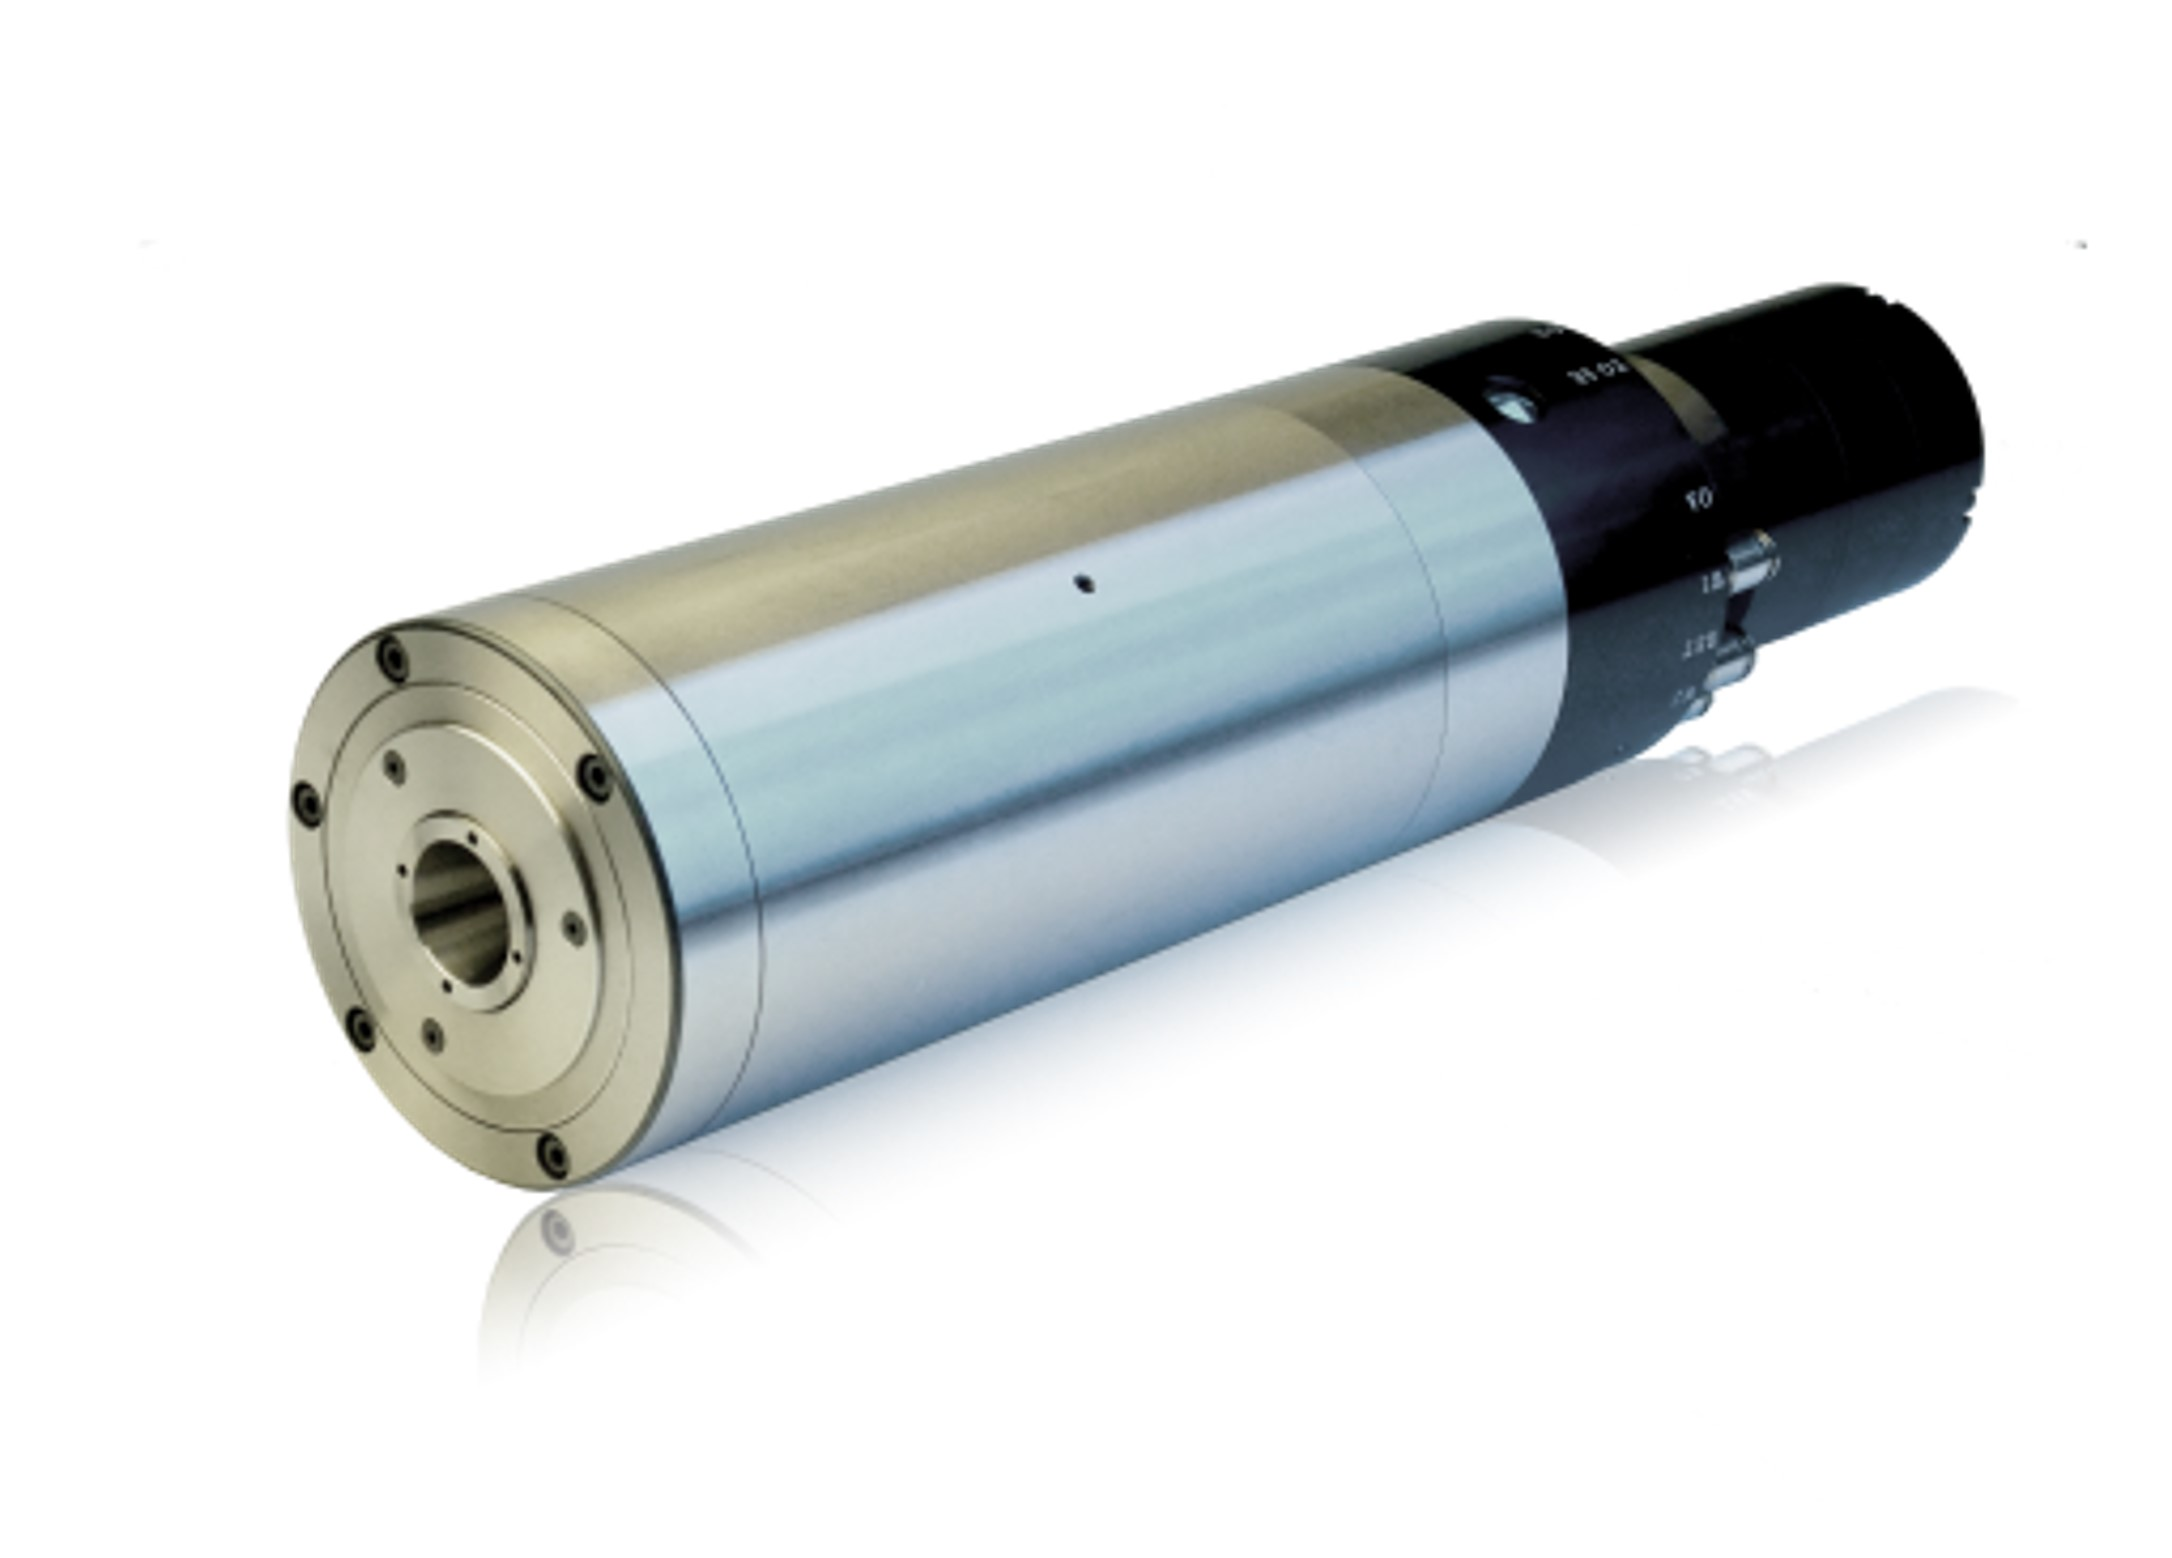 SY-100 Engraving Built-in motor spindle